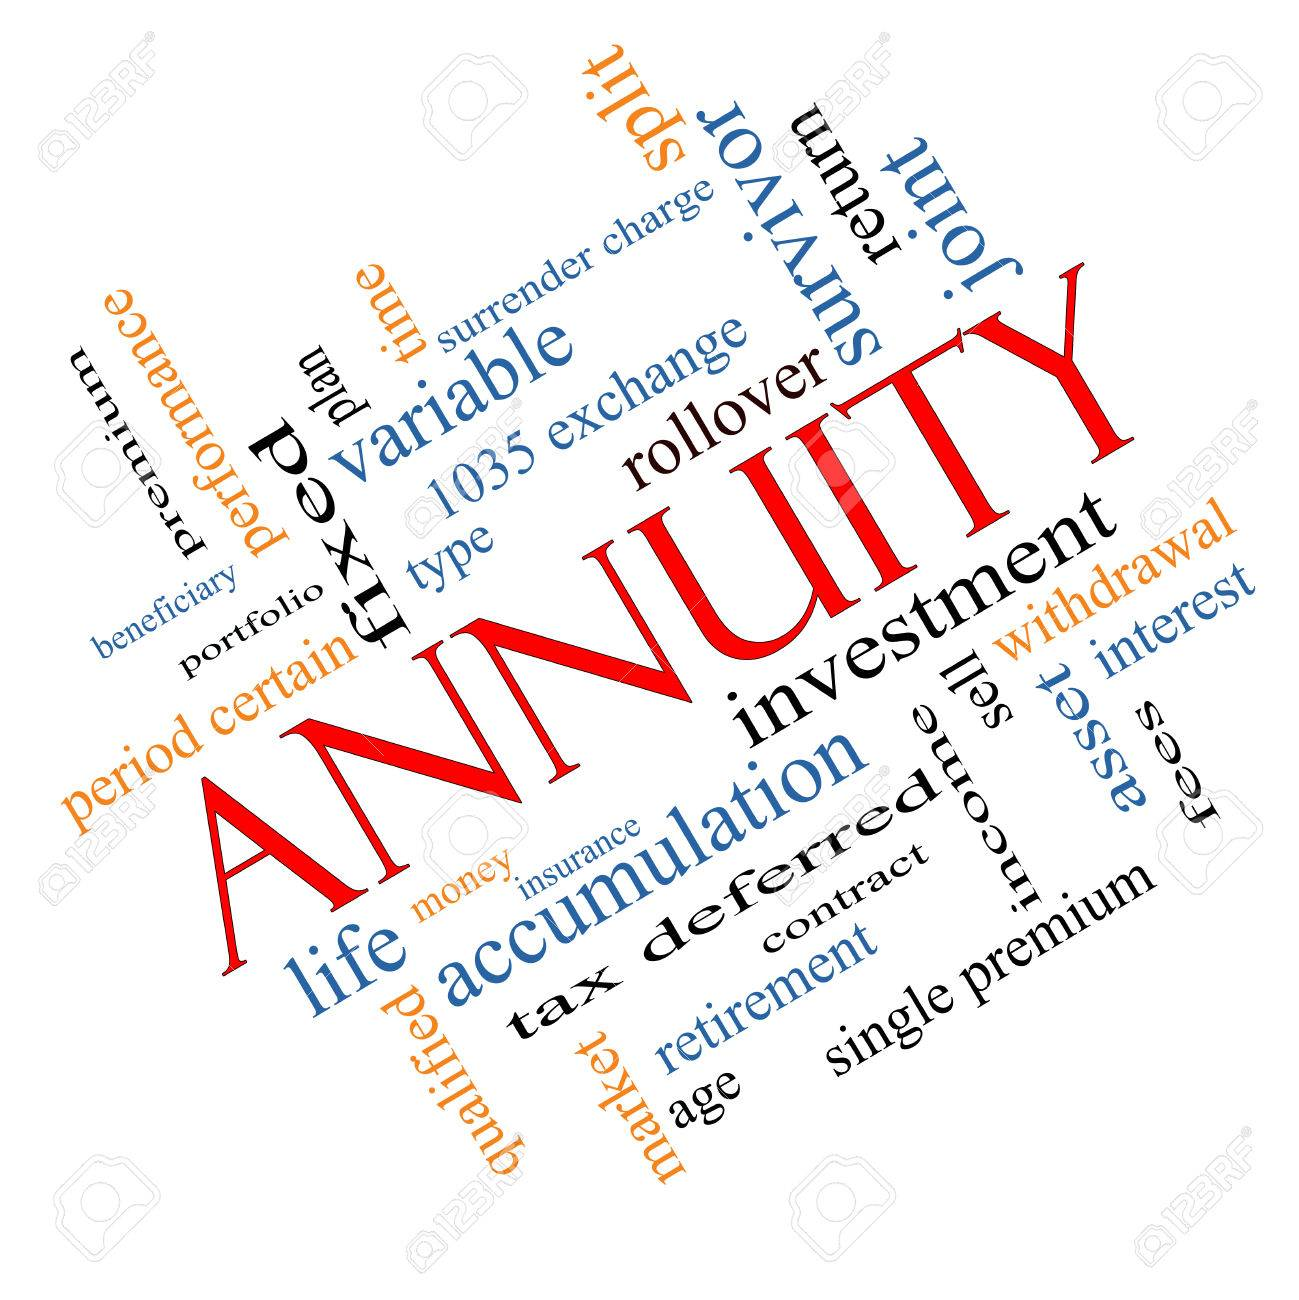 annuity word cloud concept angled with great terms such as